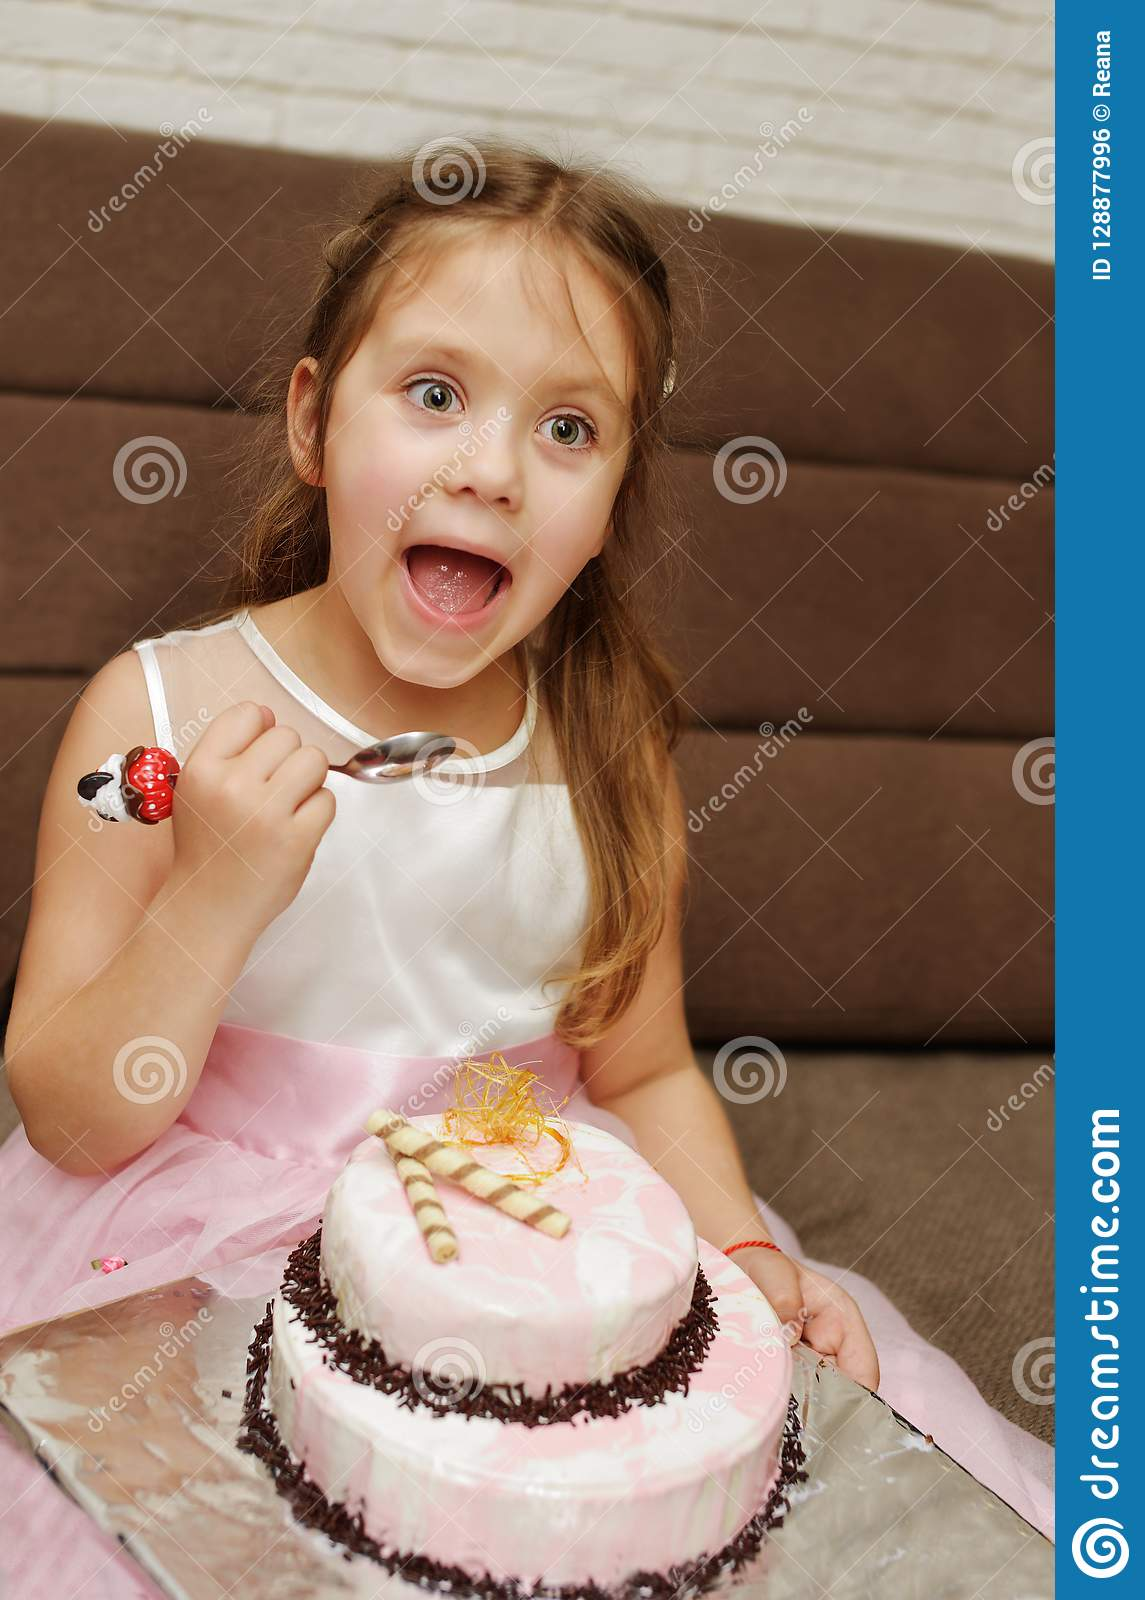 Swell Girl Eating Birthday Cake Stock Photo Image Of Color 128877996 Funny Birthday Cards Online Hendilapandamsfinfo